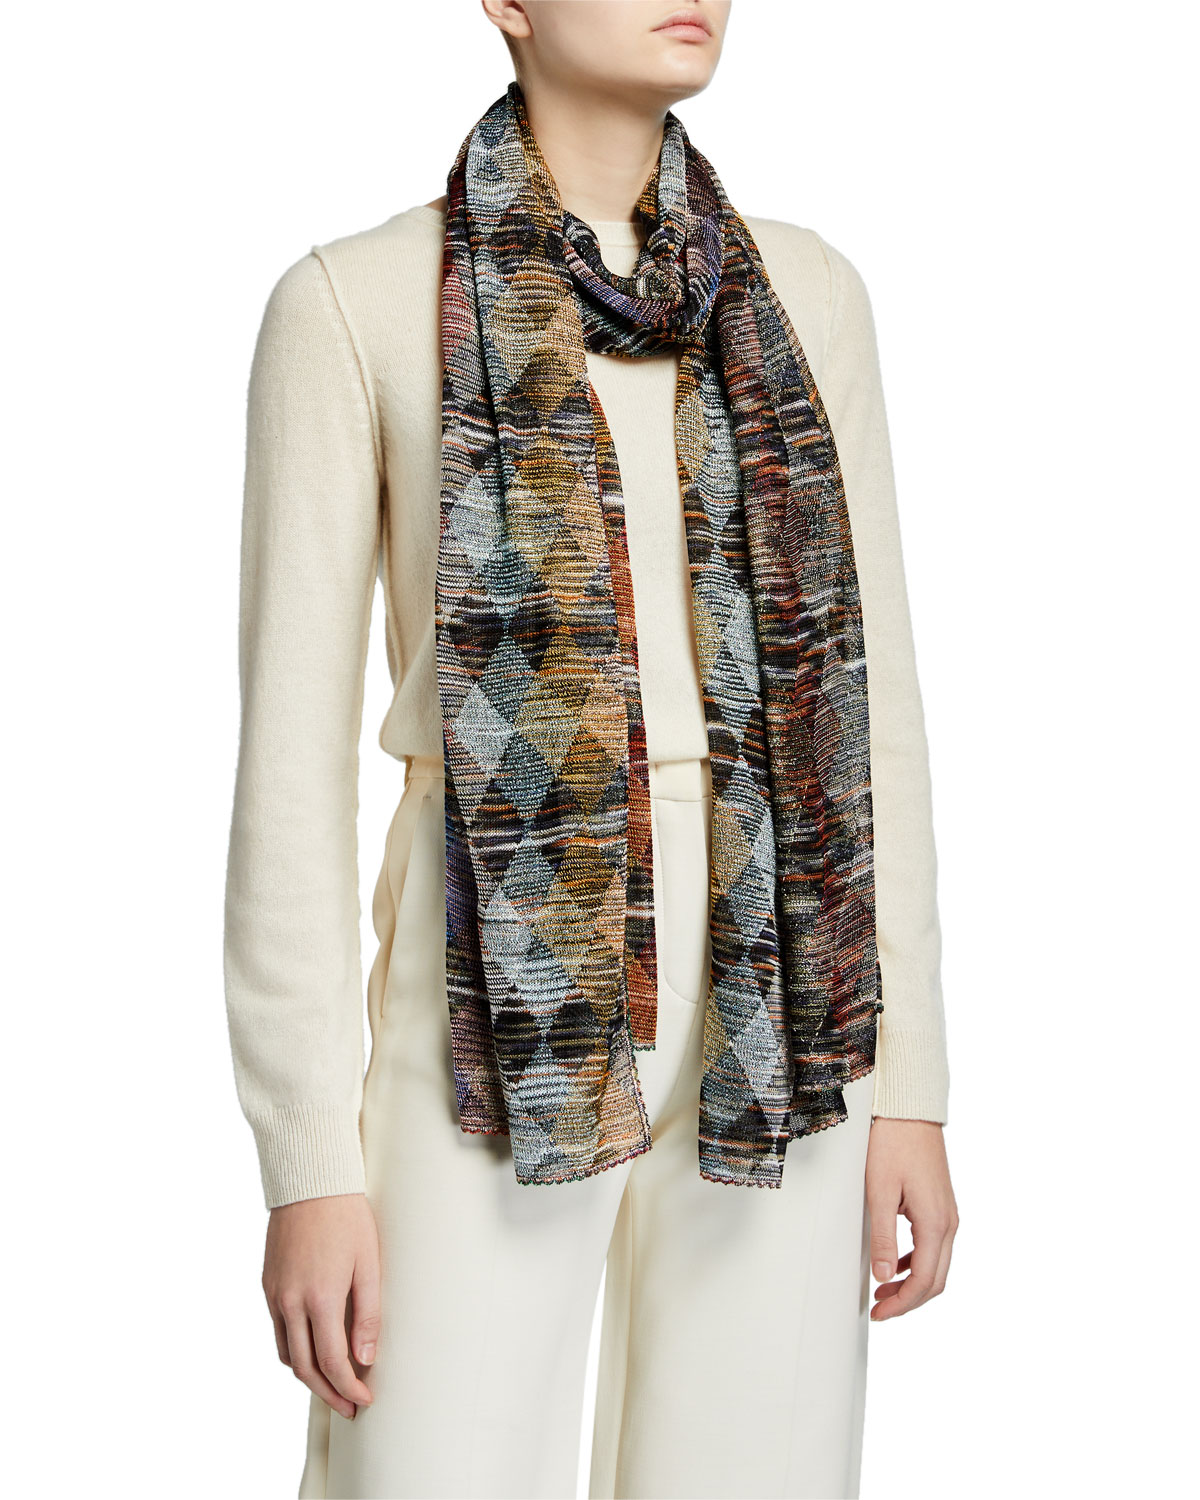 Missoni Accessories MULTICOLORED DIAMOND KNIT LUREX WRAP